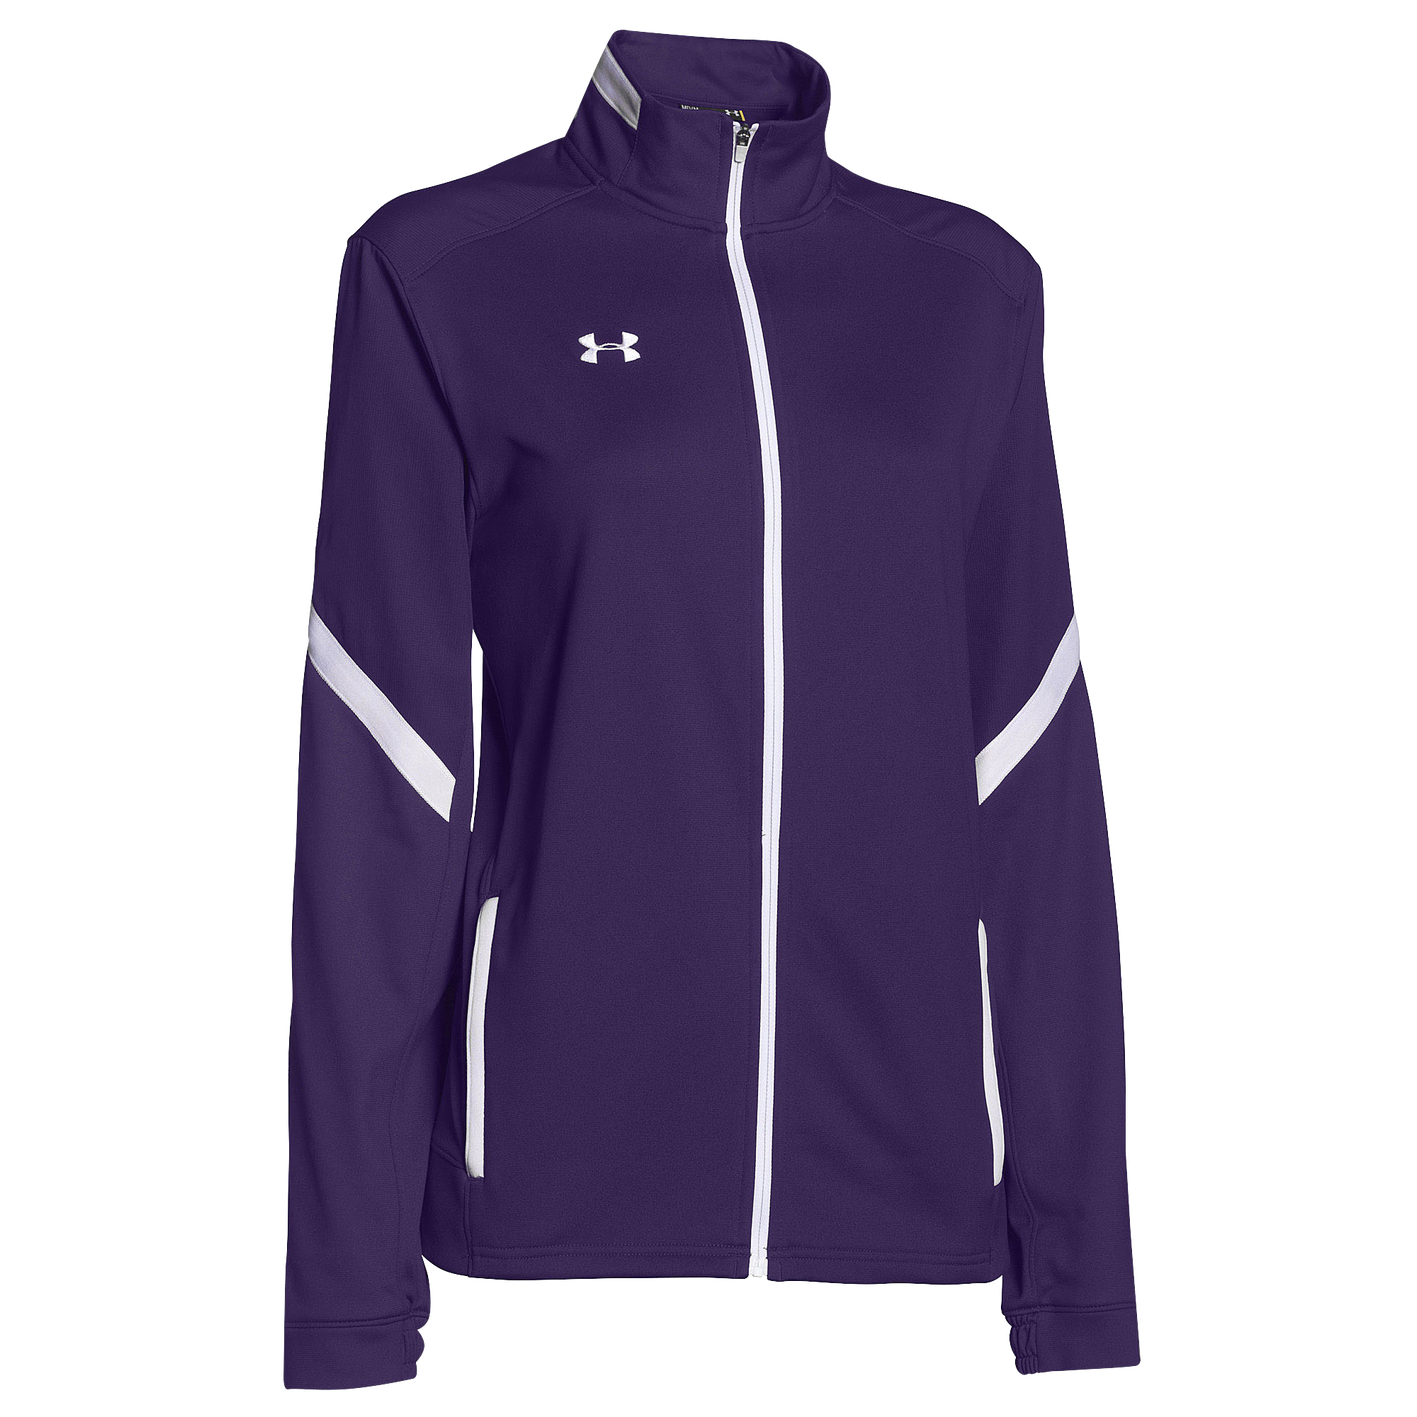 Under Armour Team Qualifier Warm-Up Jacket - Women s - For All ... 5ab56685d5